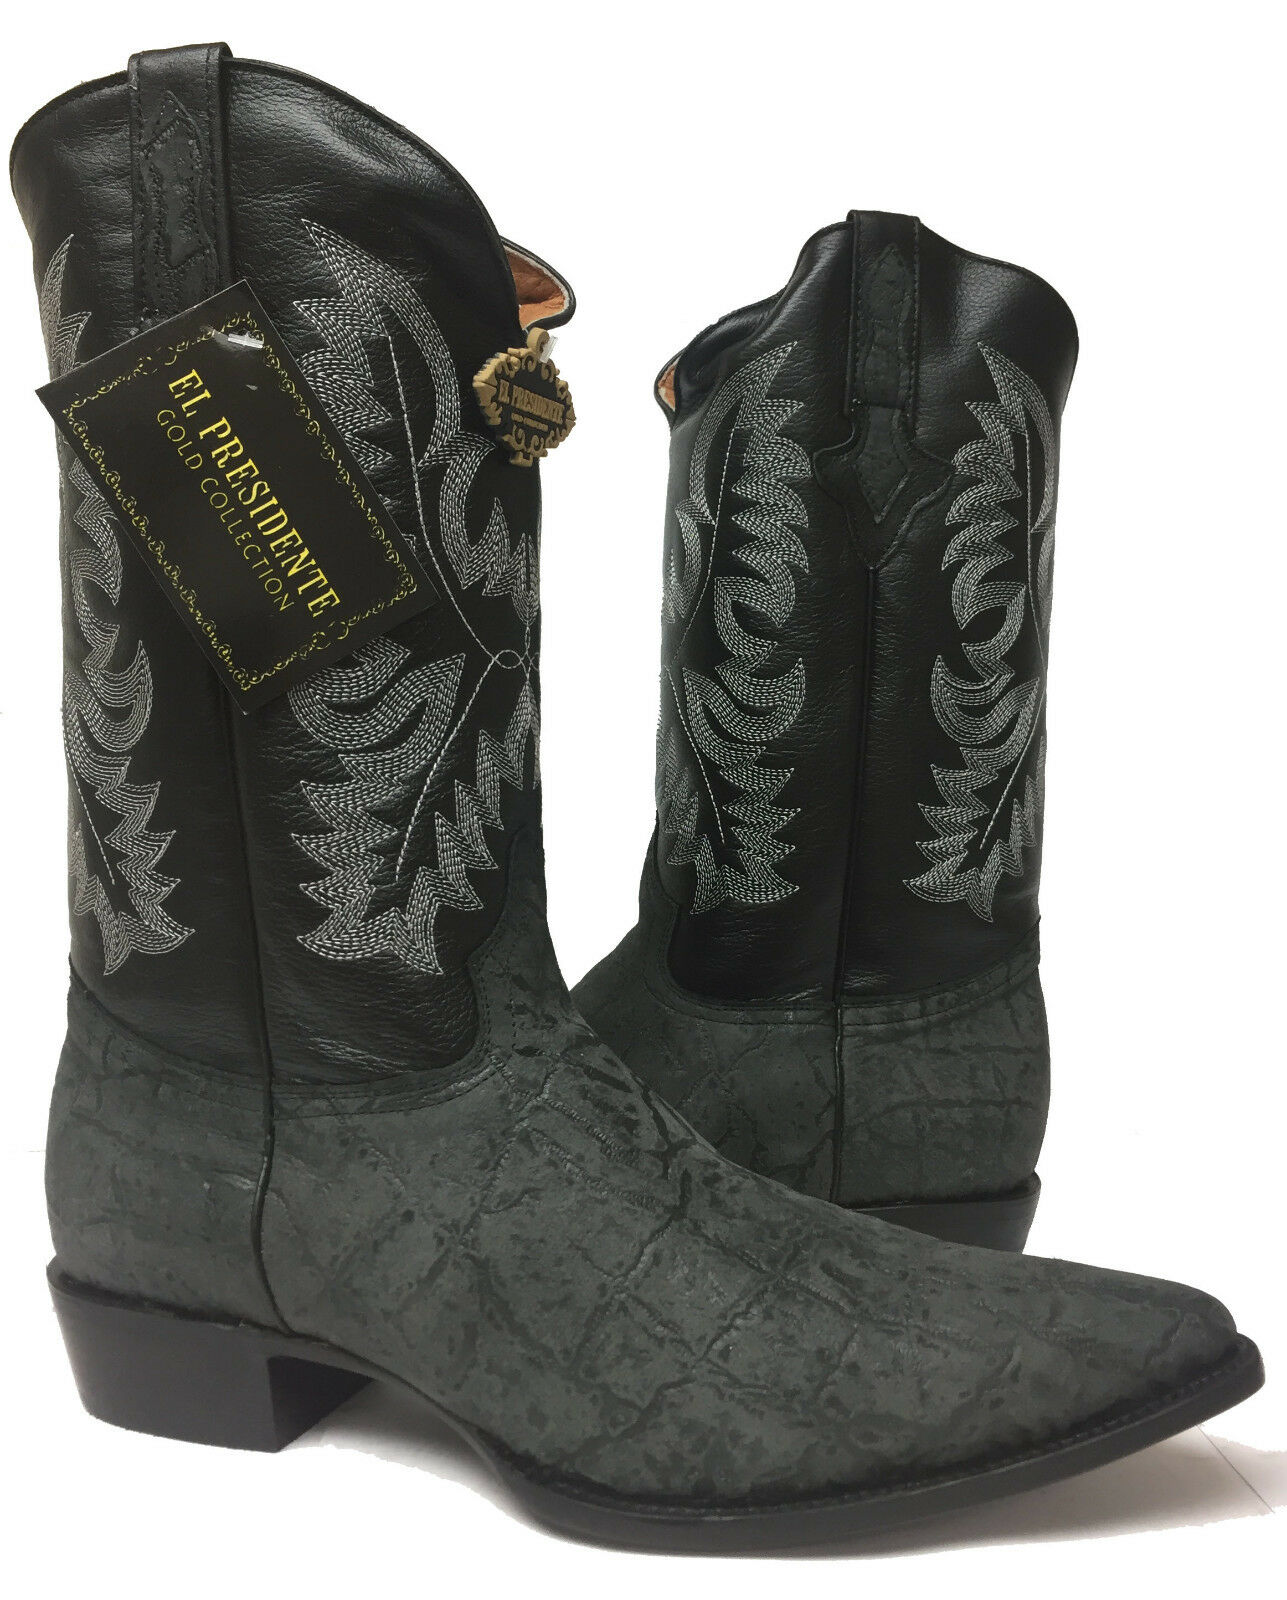 Mens Black Elephant Bull Print Leather Exotic Cowboy Western Rodeo Boots 12